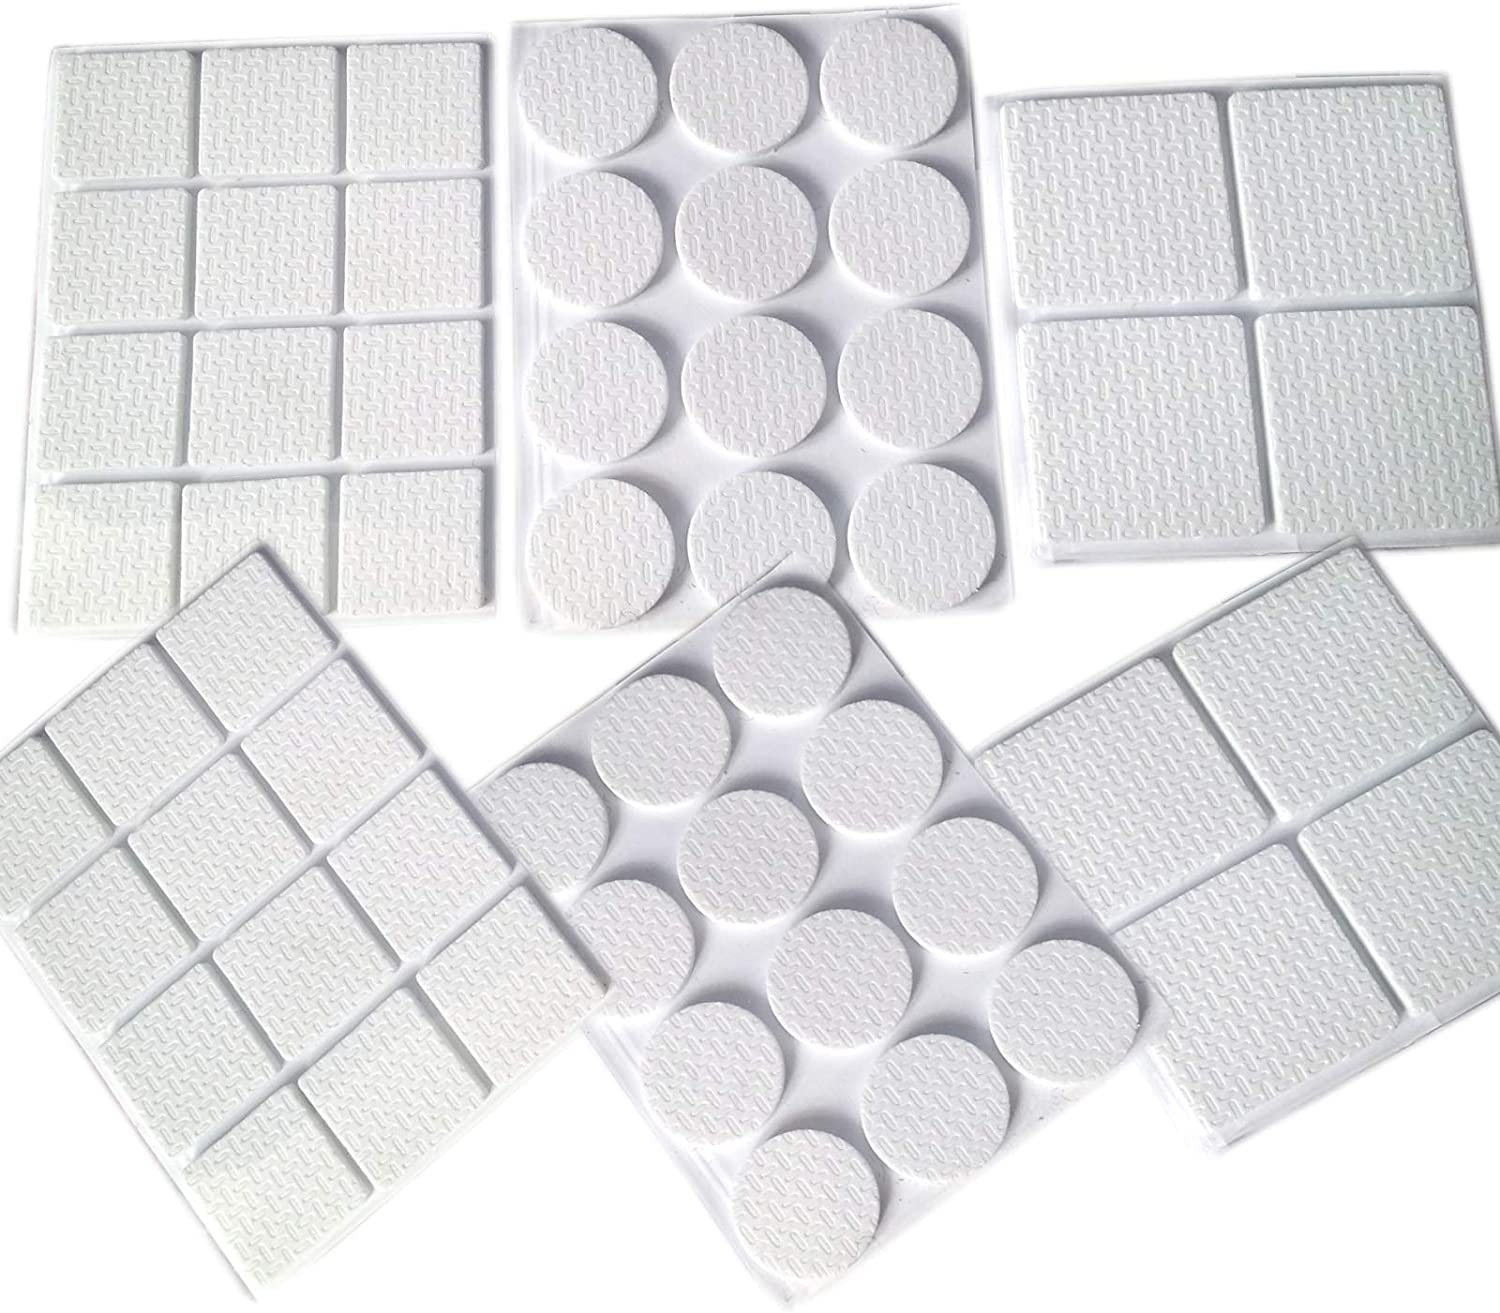 24 ROUND PADS 56 ANTI-SKID MULTI-PURPOSE FURNITURE // FLOOR PROTECTOR RUBBER PADS 8 LARGE SQUARE PADS. 24 SMALL SQUARE PADS